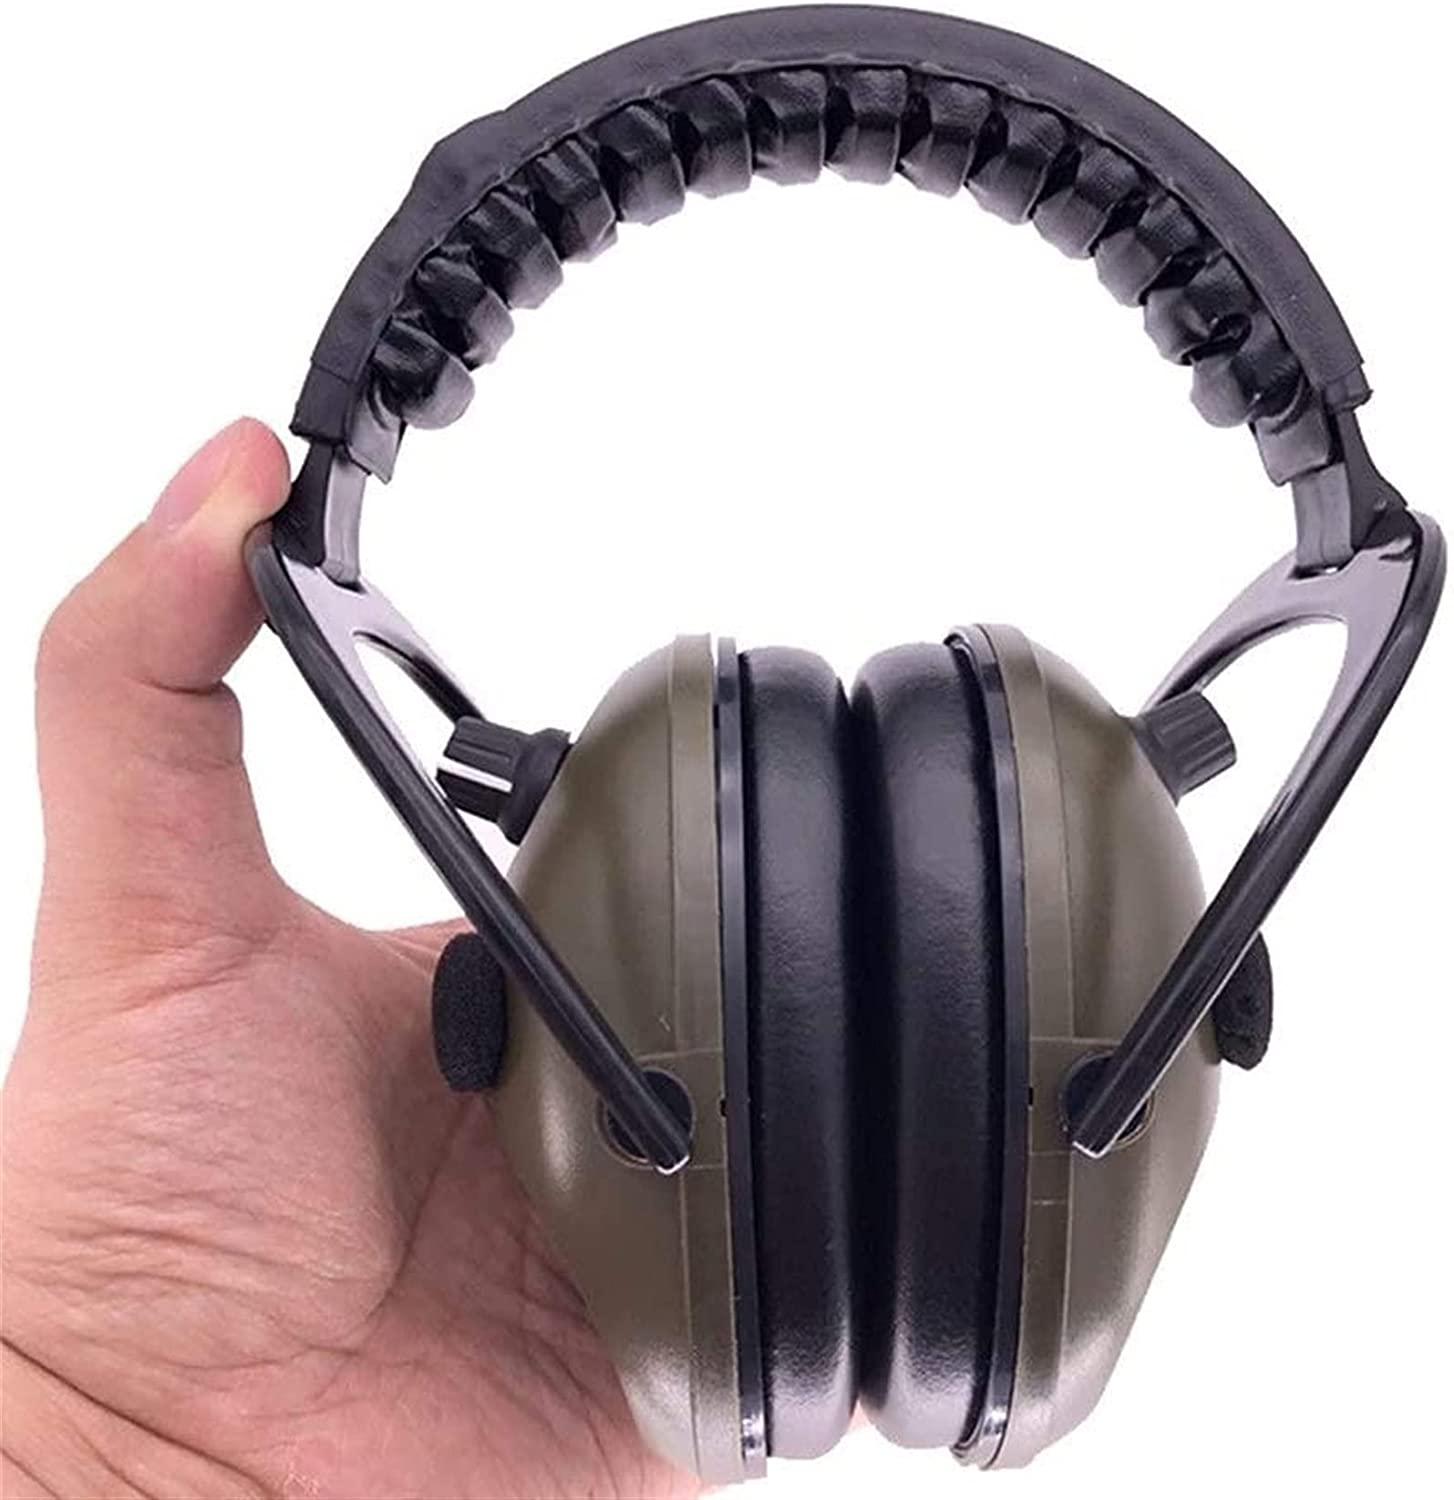 Soundproof Earmuffs Pick-up and Active Heads 2021 new Tactical Wholesale Anti-Noise